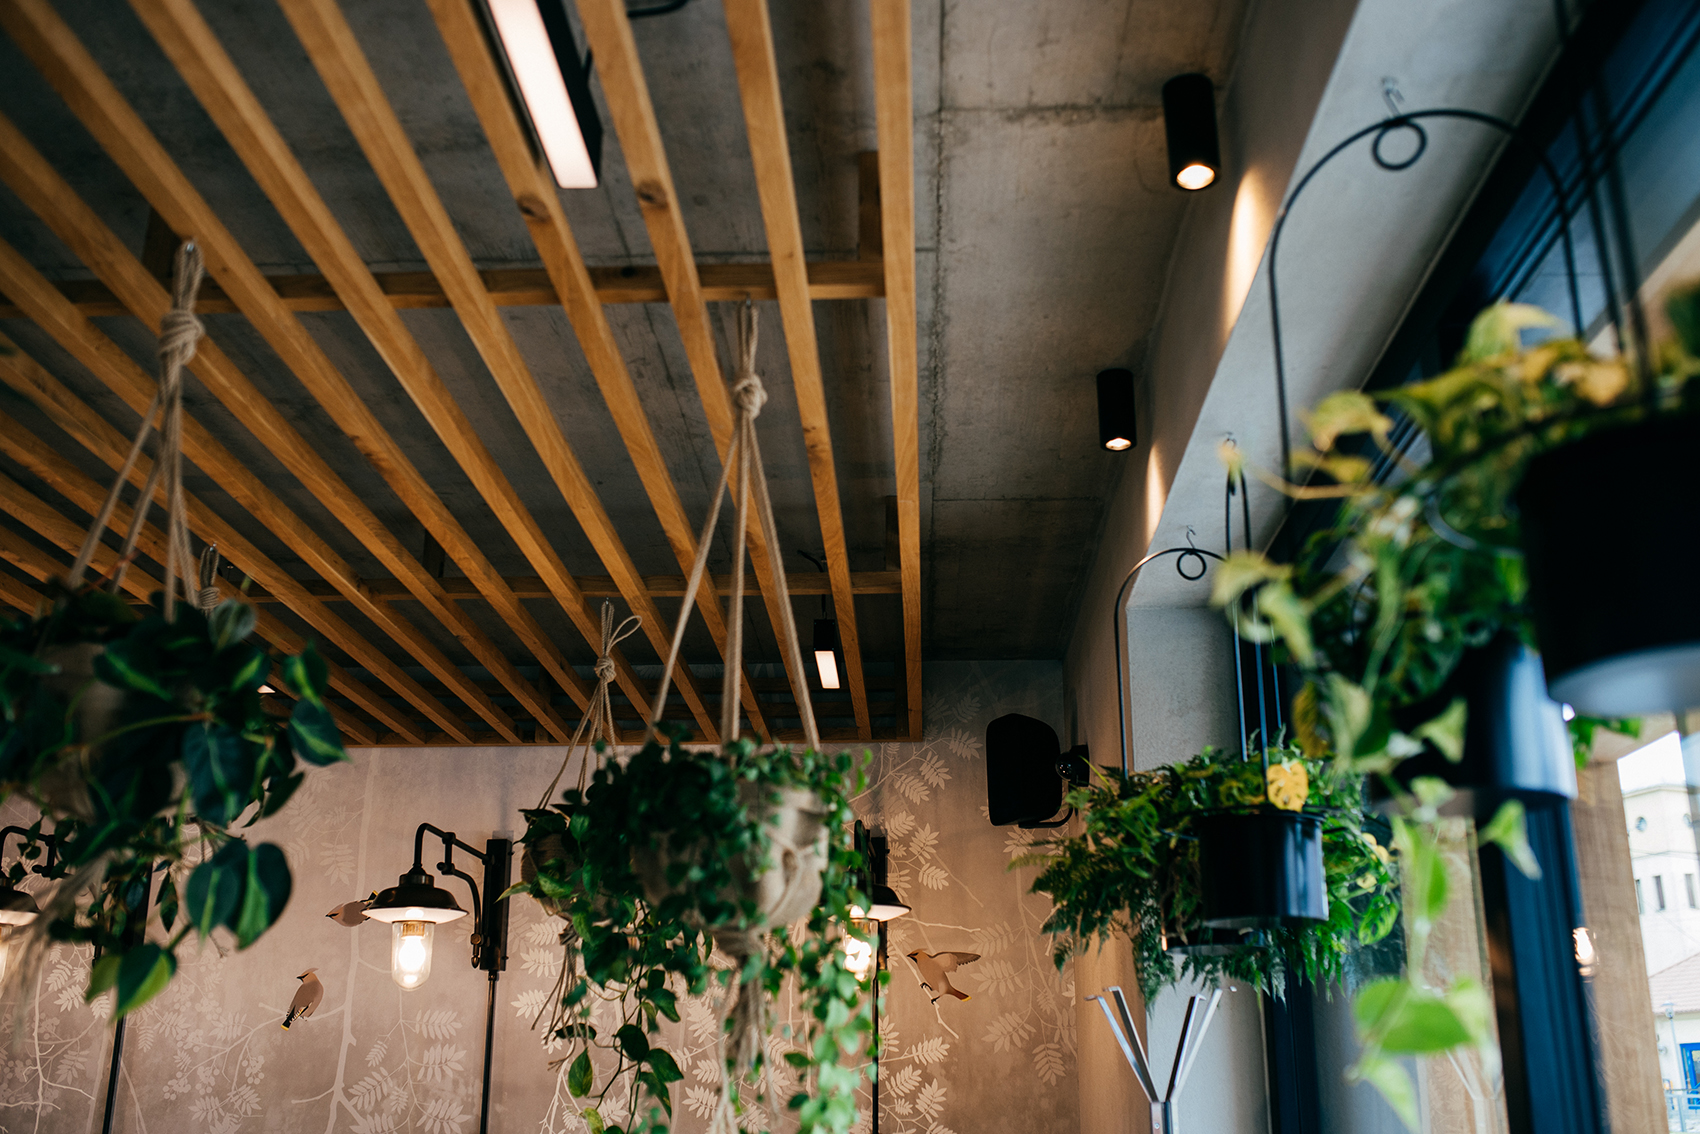 Hanging plants in coffee shop